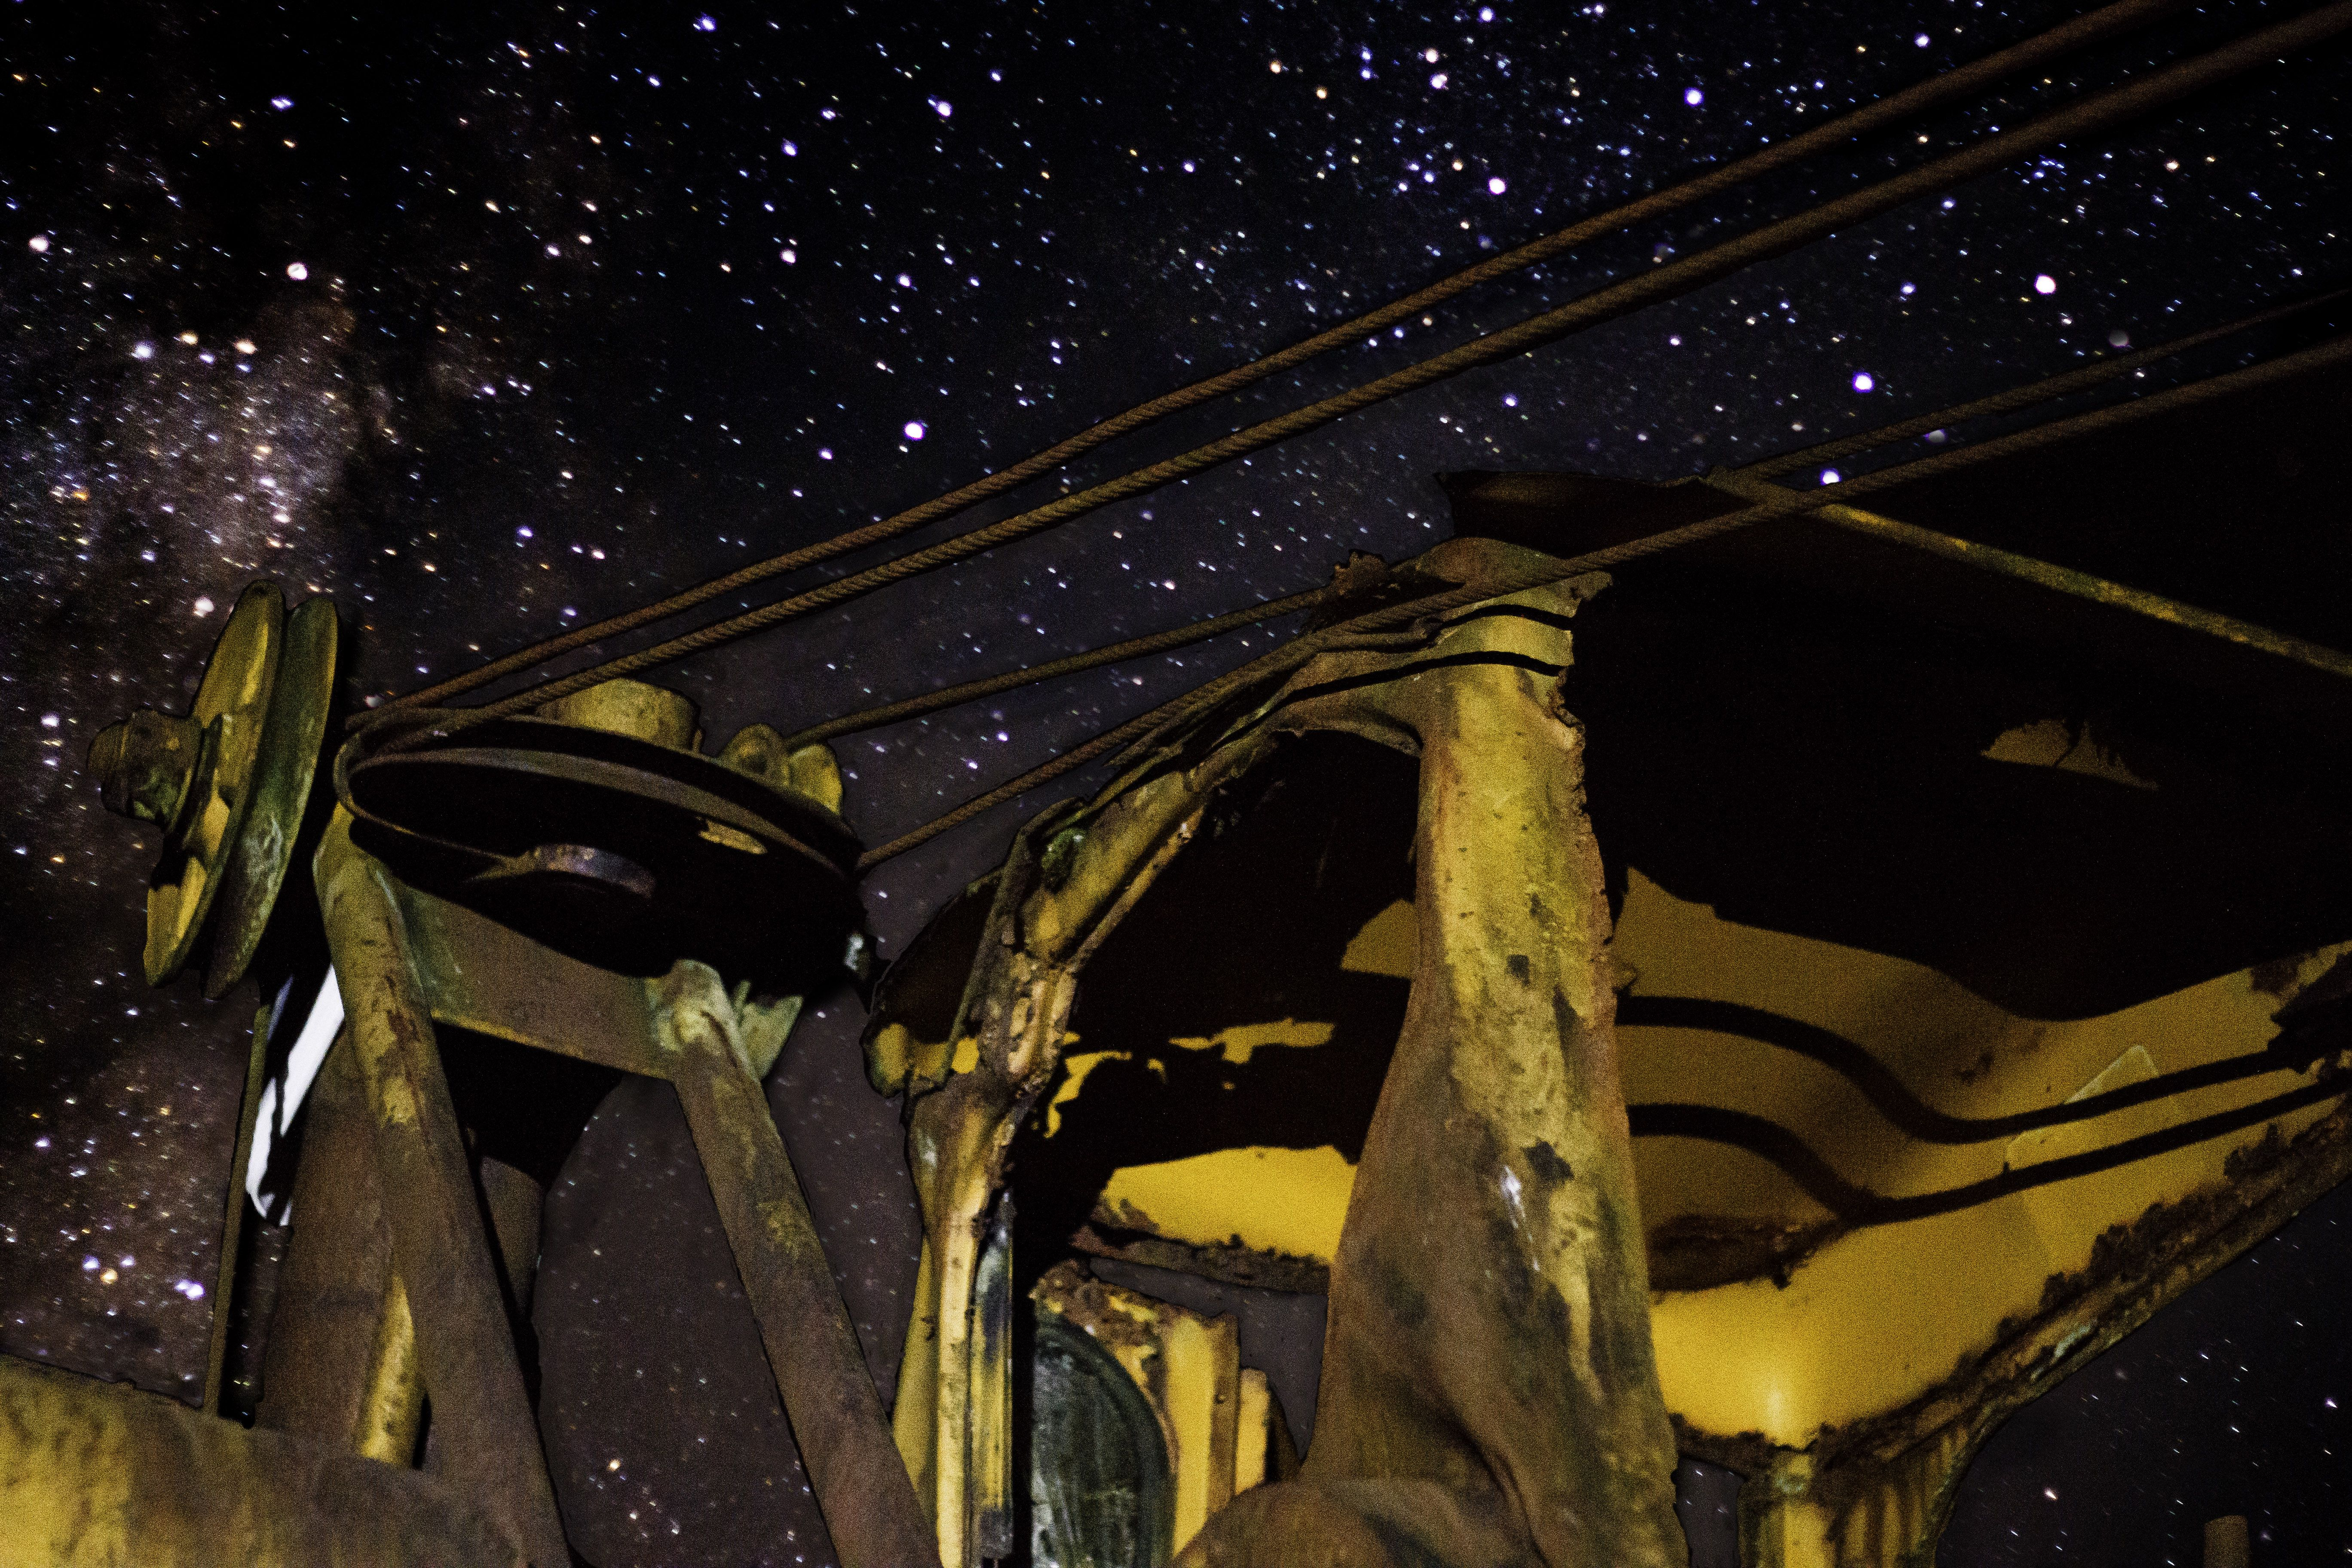 Old Beat Up Farm Equipment In Front Of A Starry Sky By Bonnie